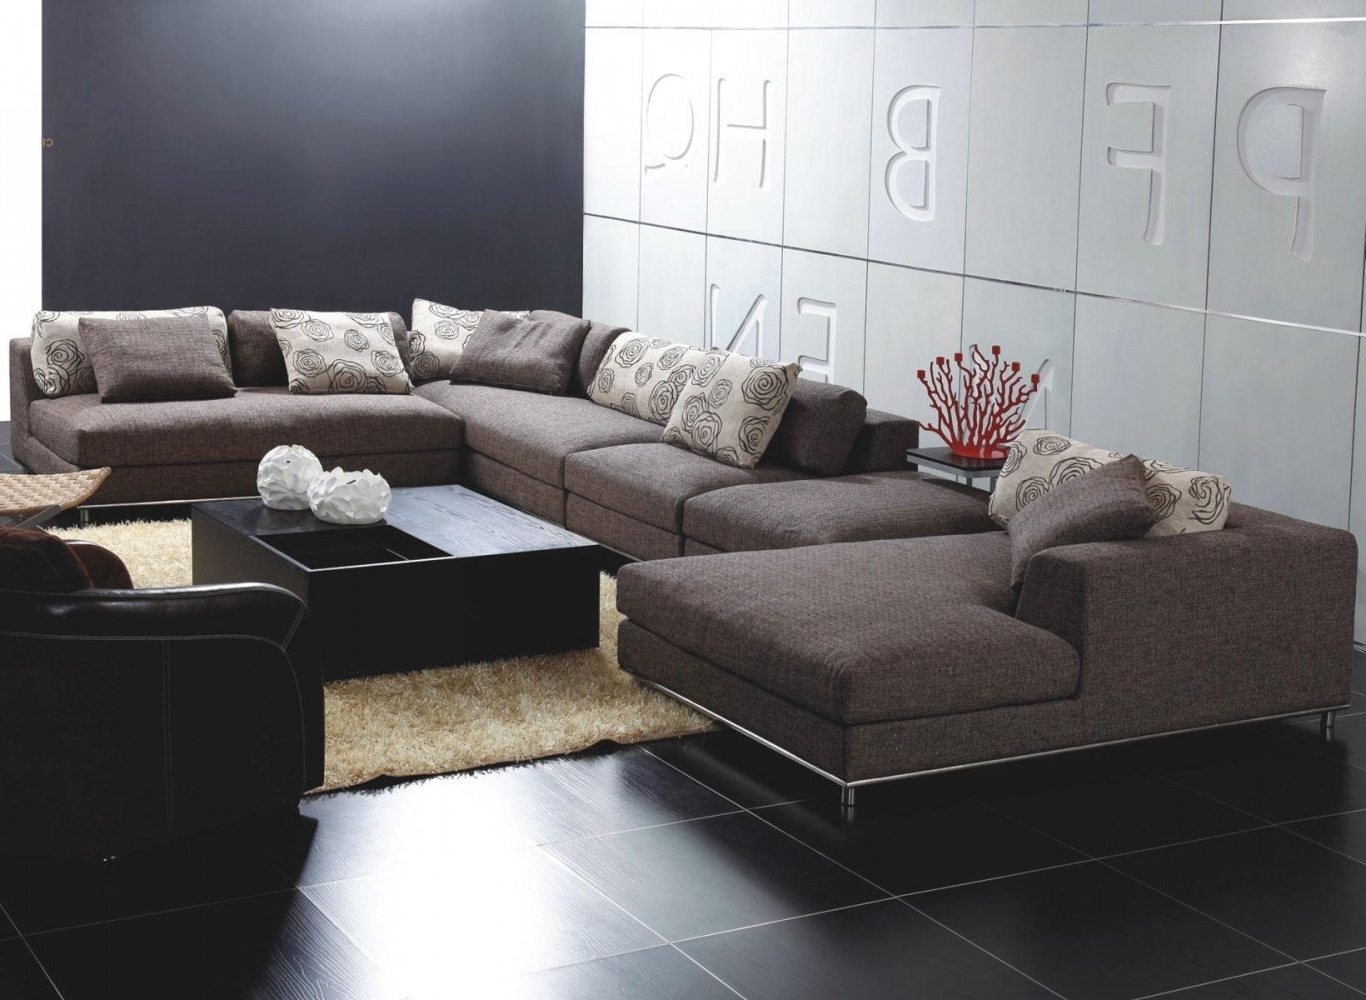 Newest Ottawa Sectional Sofas In November 2016 – Sectional Sofas (View 5 of 20)